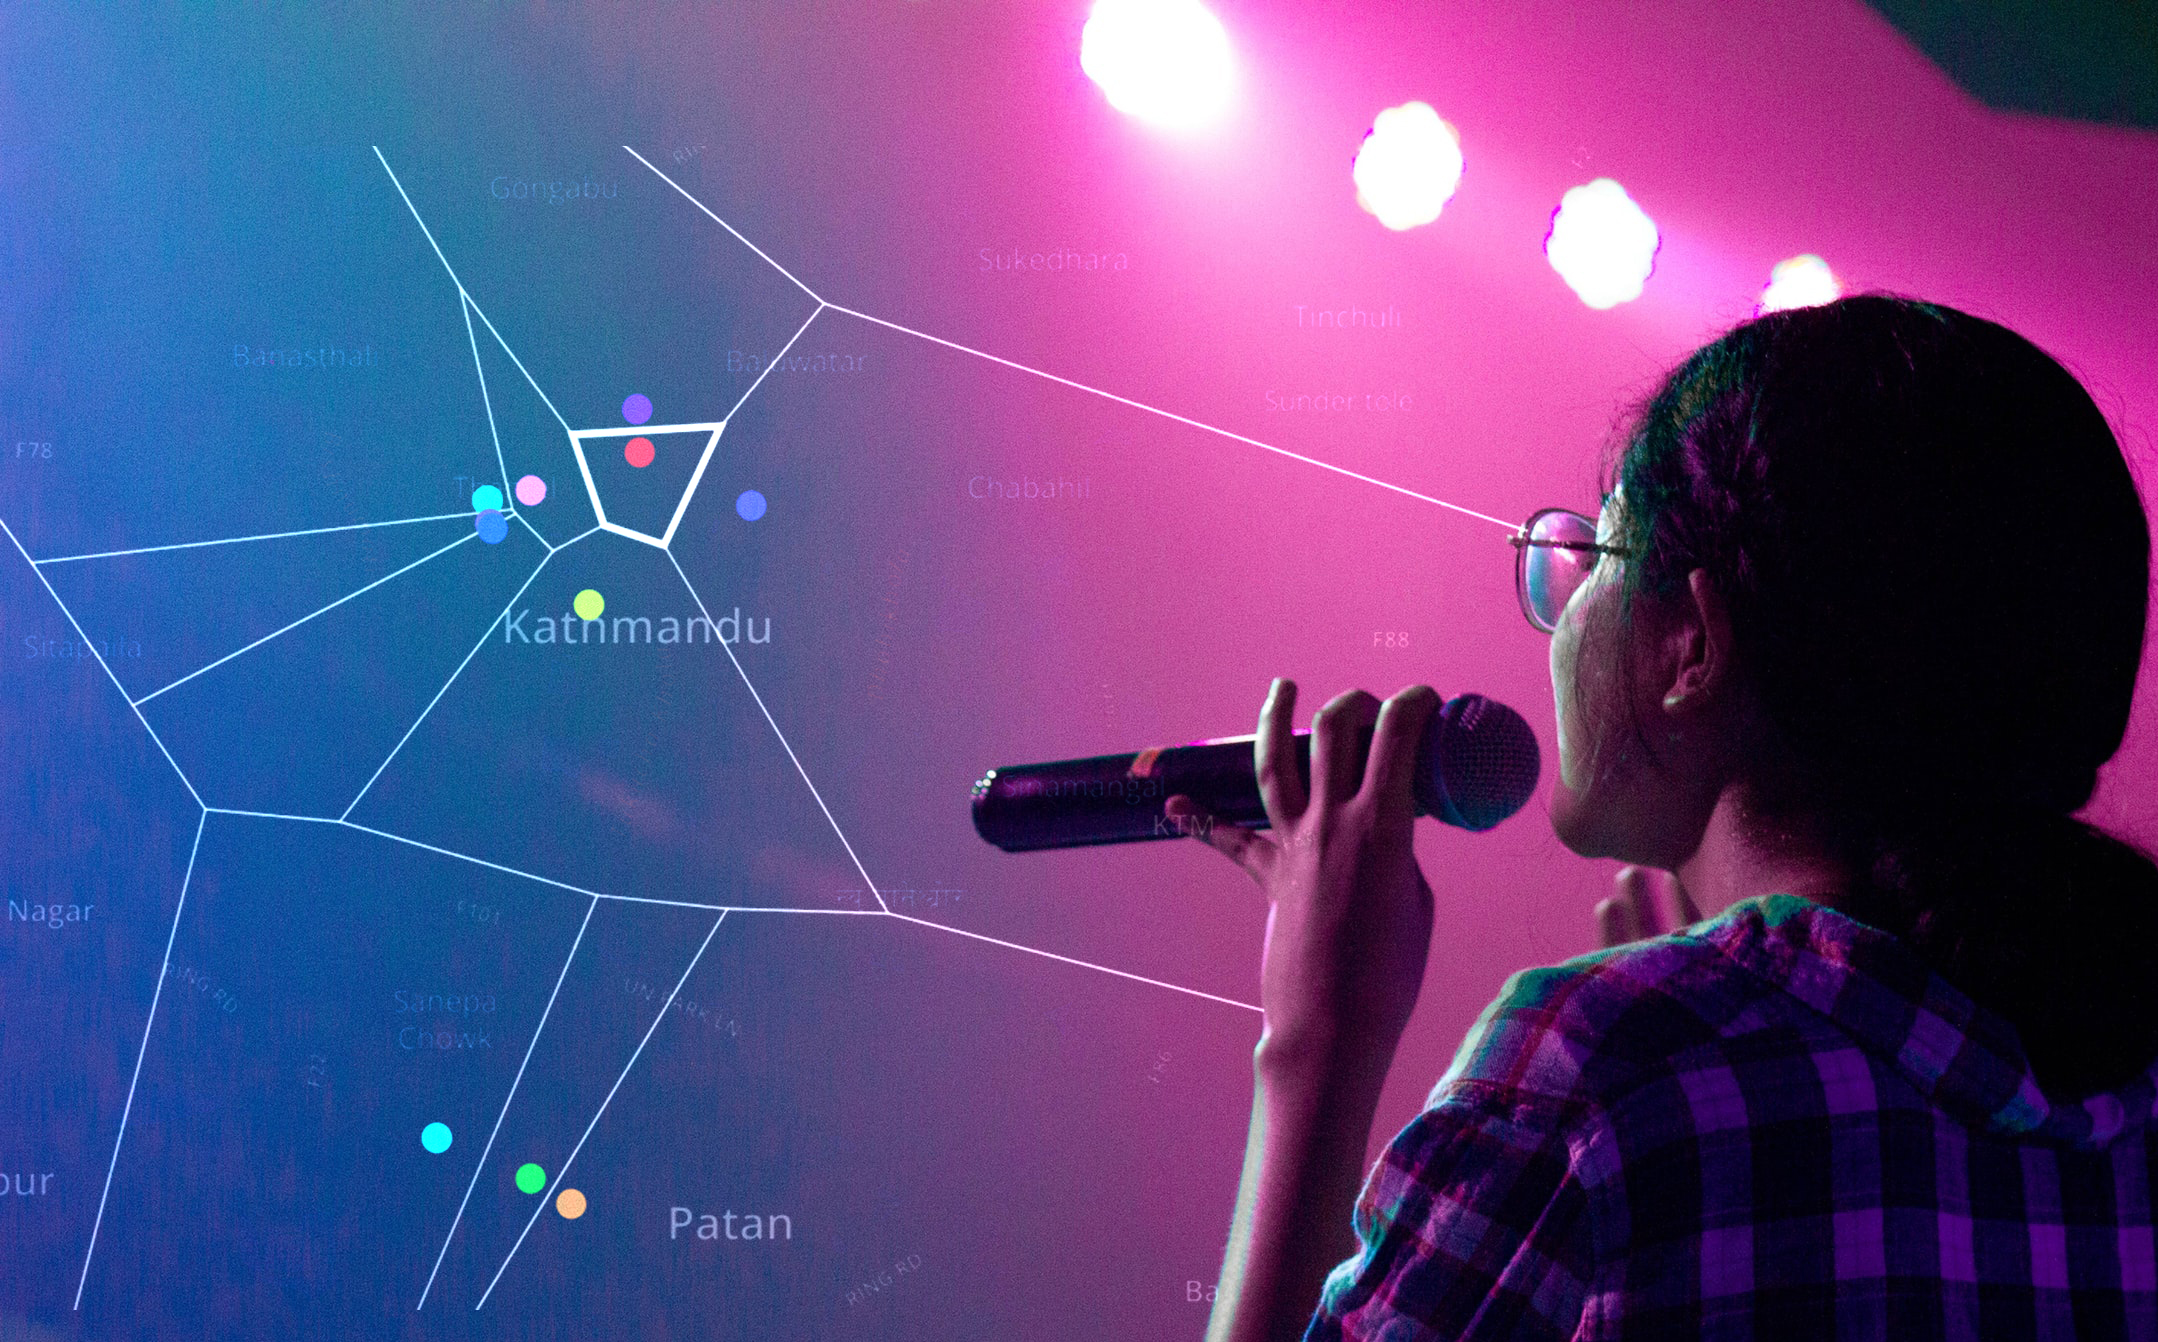 Feasibility Study - Moonlit Solutions conducted an extensive research on Kathmandu's Karaoke industry incorporating questionnaire based survey analysis, Voronoi analysis, competition analysis and sentiment analysis.